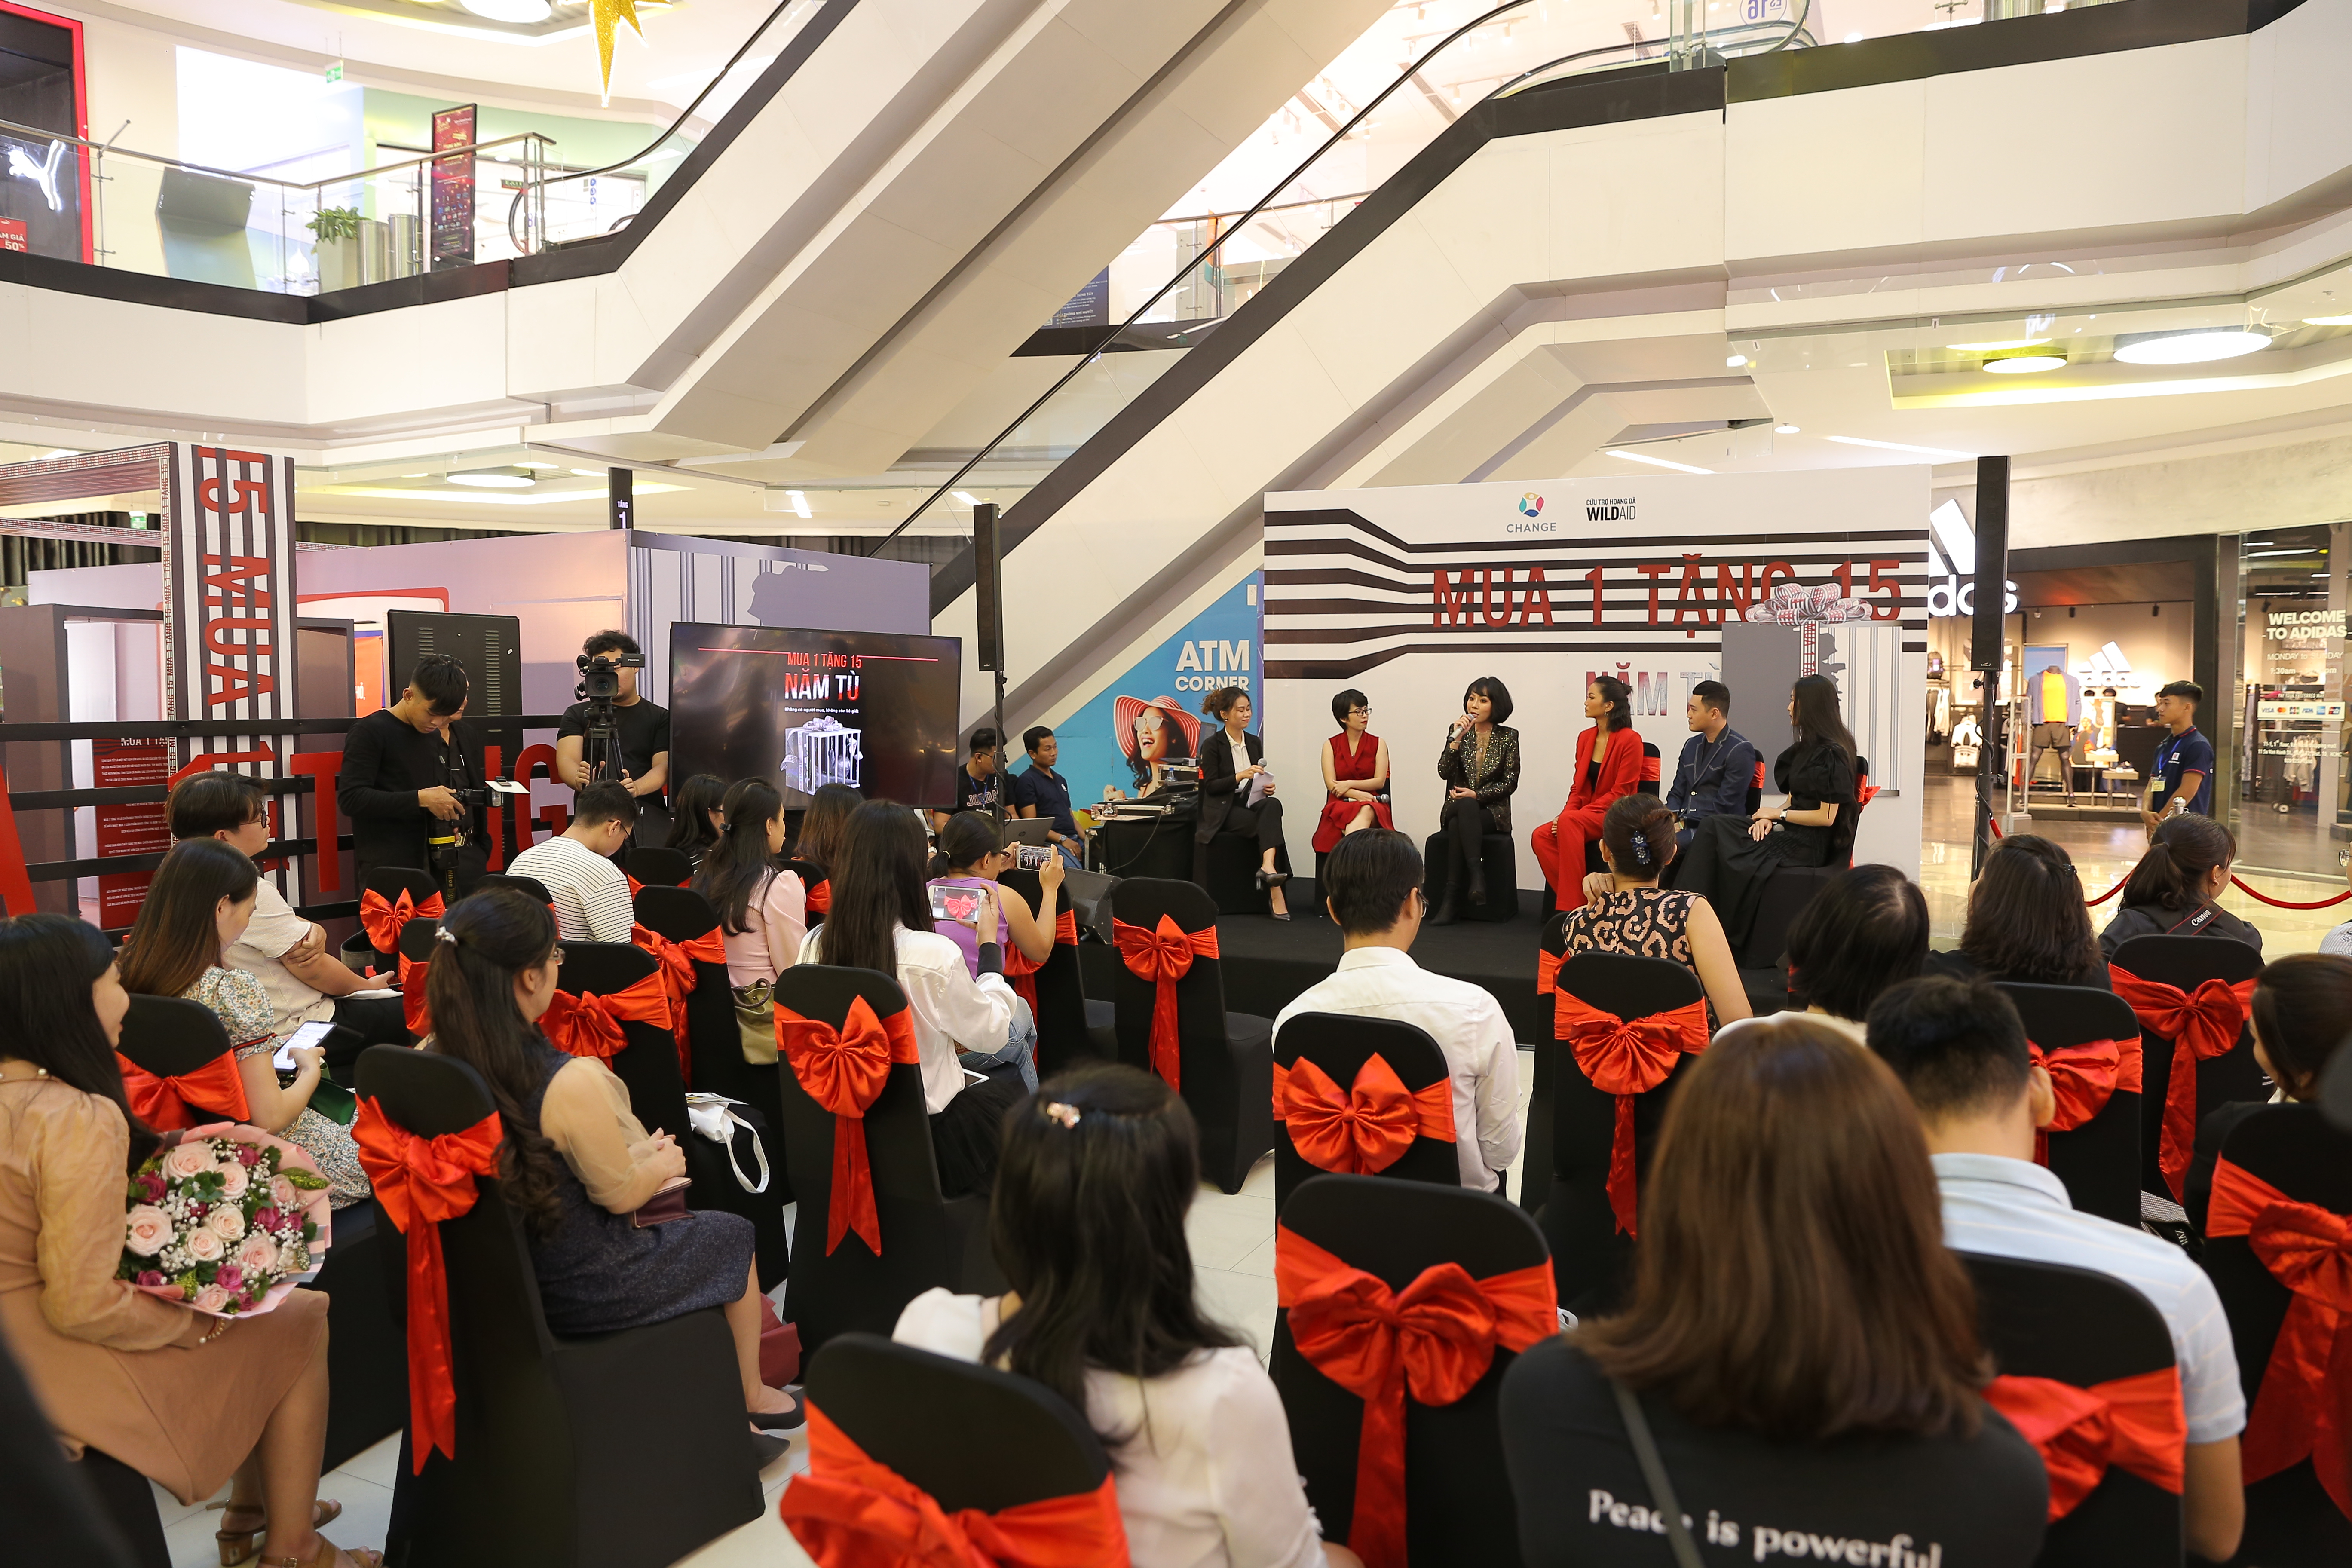 A launch event for the 'Buy 1 Get 15' campaign against illegal wildlife trafficking at Van Hanh Mall in Ho Chi Minh City on December 30, 2019. Photo: CHANGE